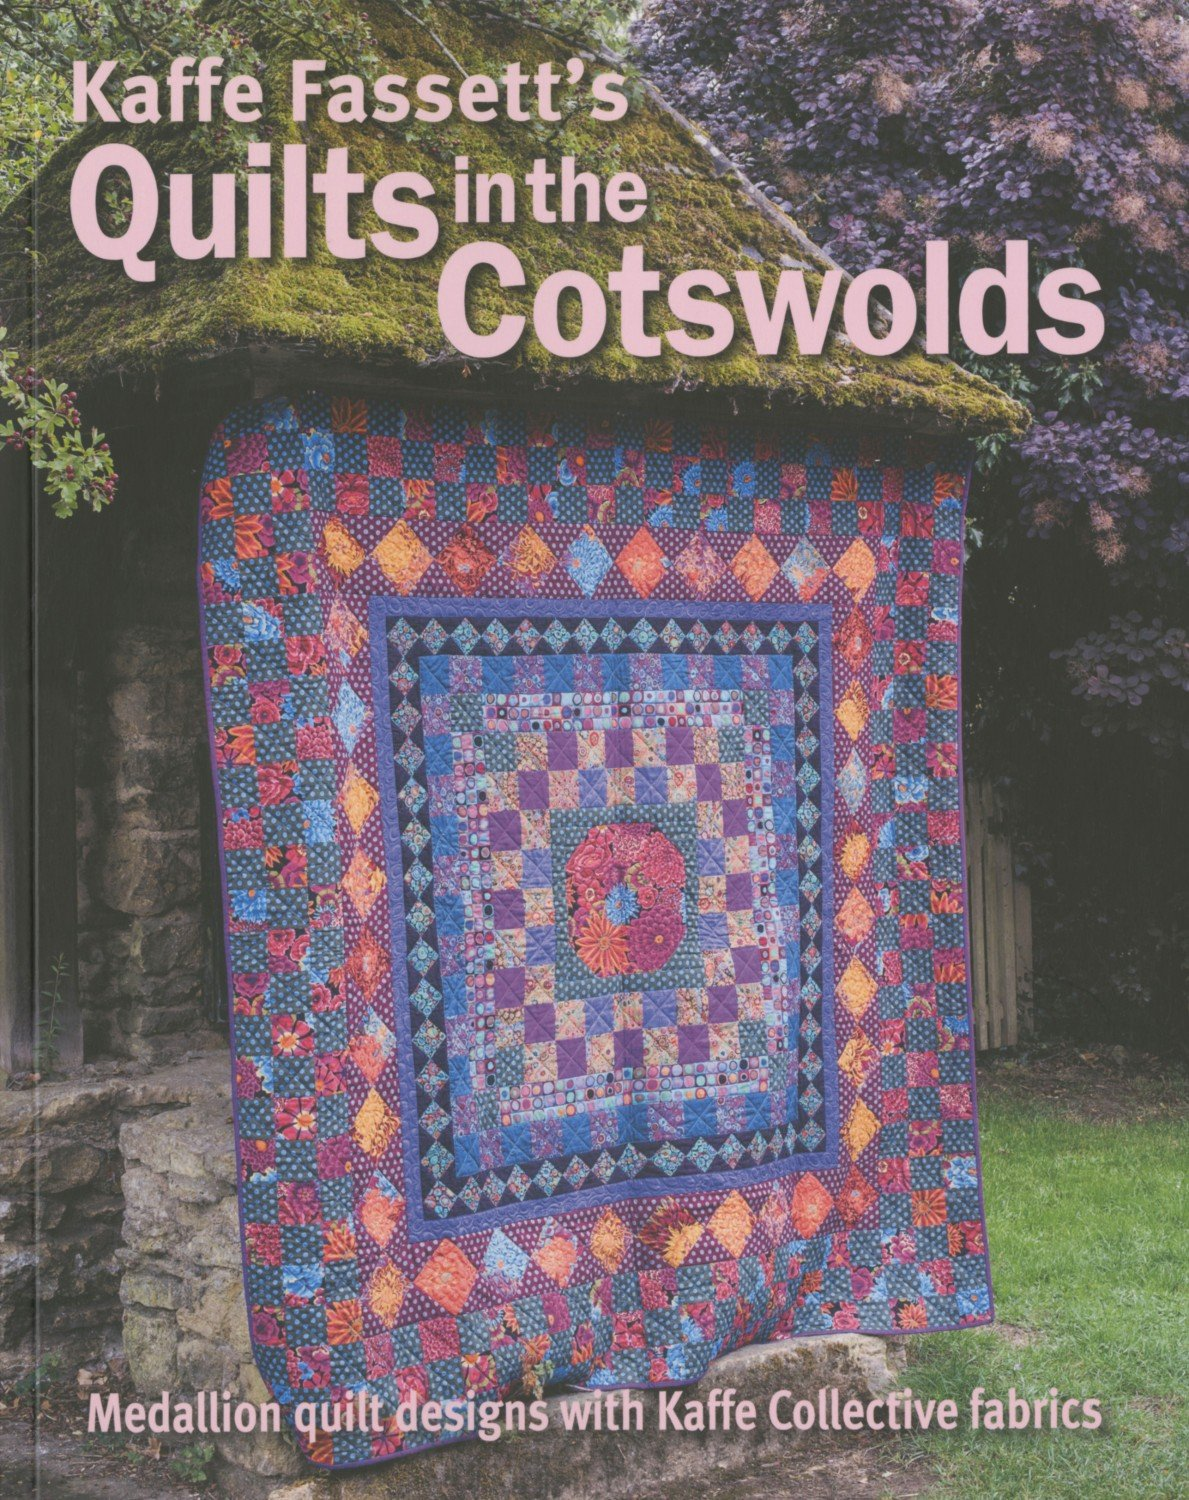 Kaffe Fassets Quilts in the Cotswolds